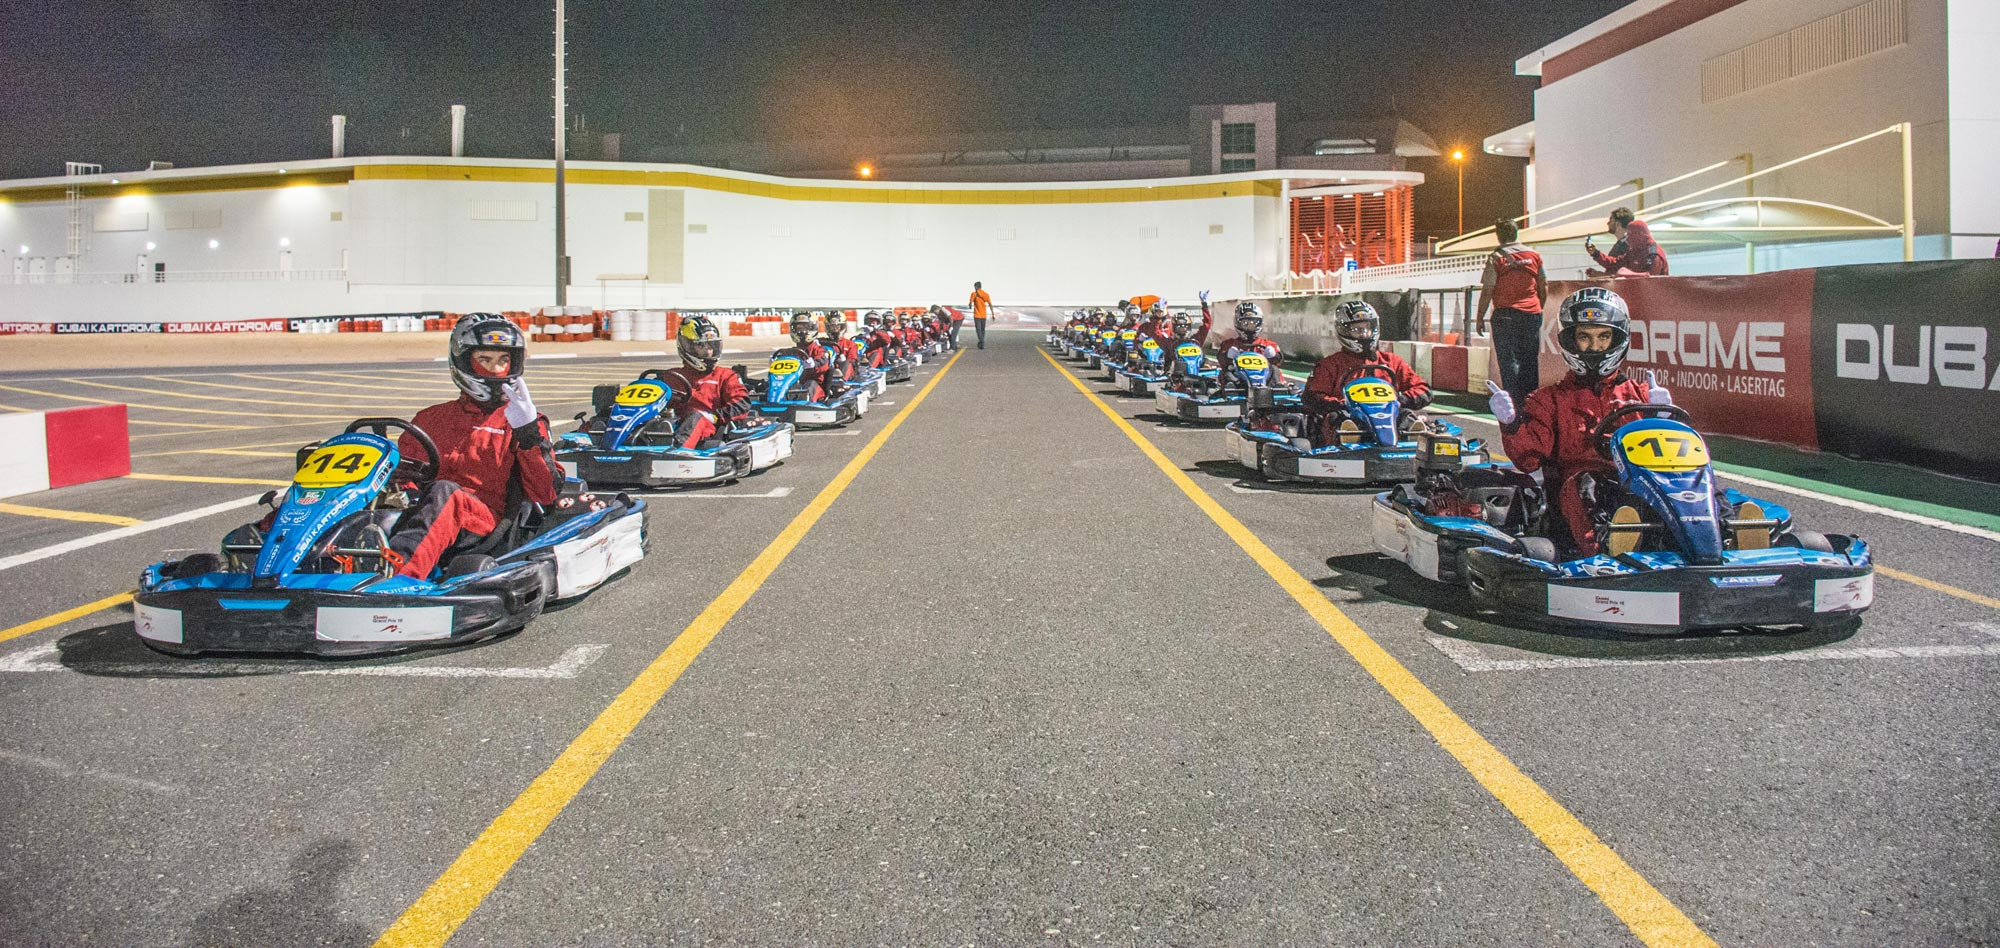 Outdoor Kartdrome in Dubai on Wednesday 9th November